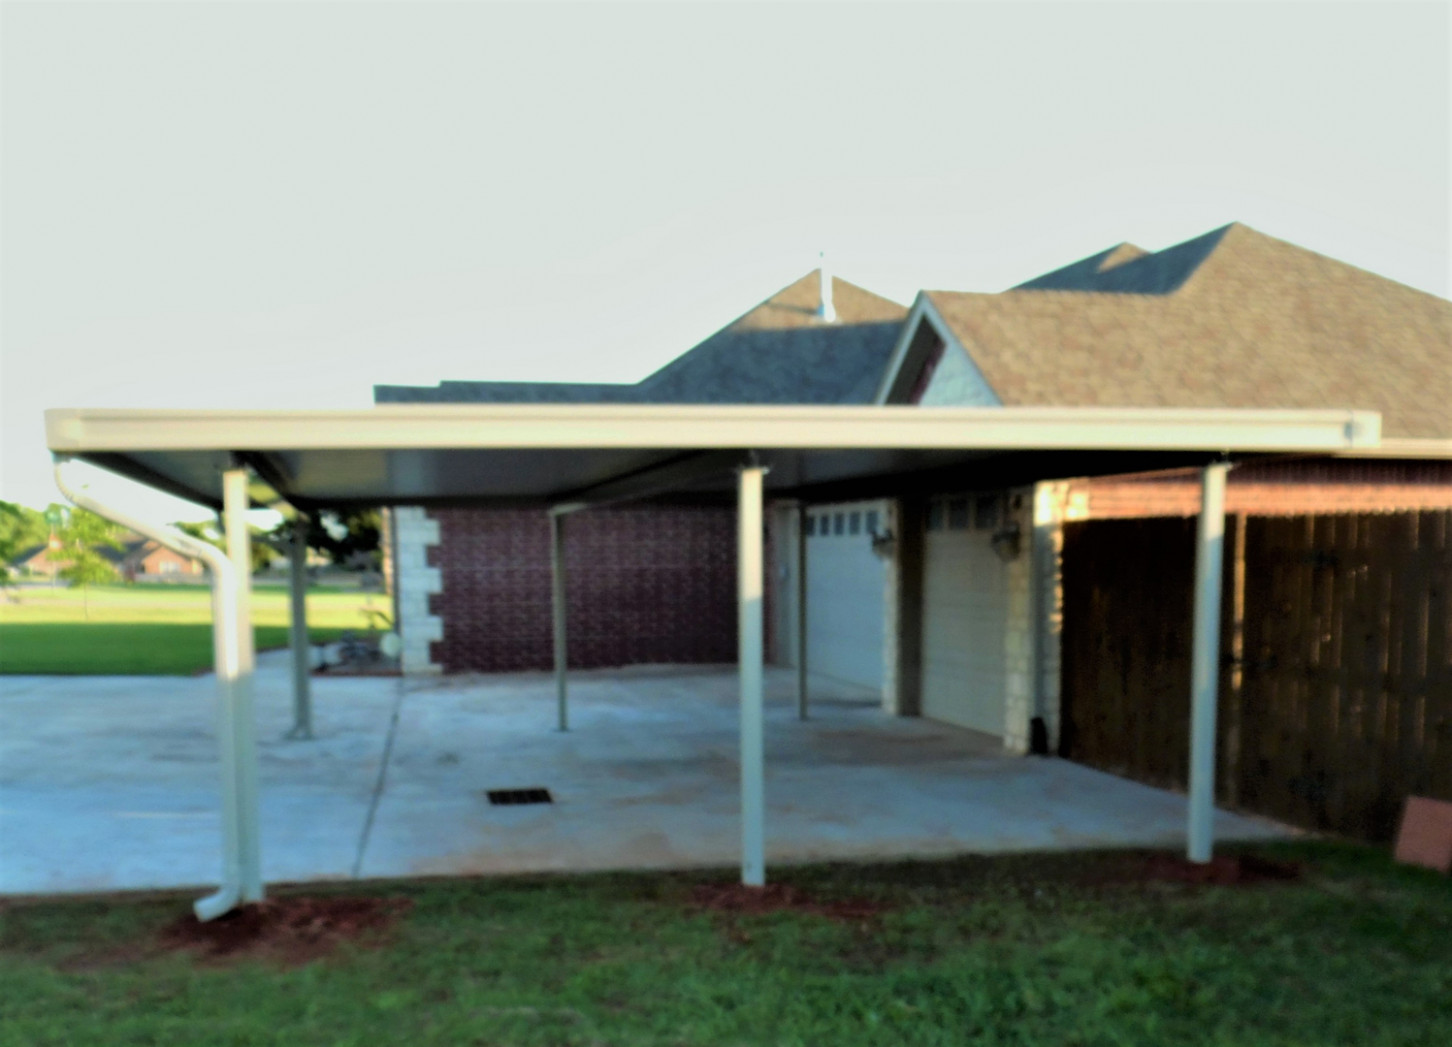 Carports Of Oklahoma Home Page Welcome Wooden Carport Attached To House